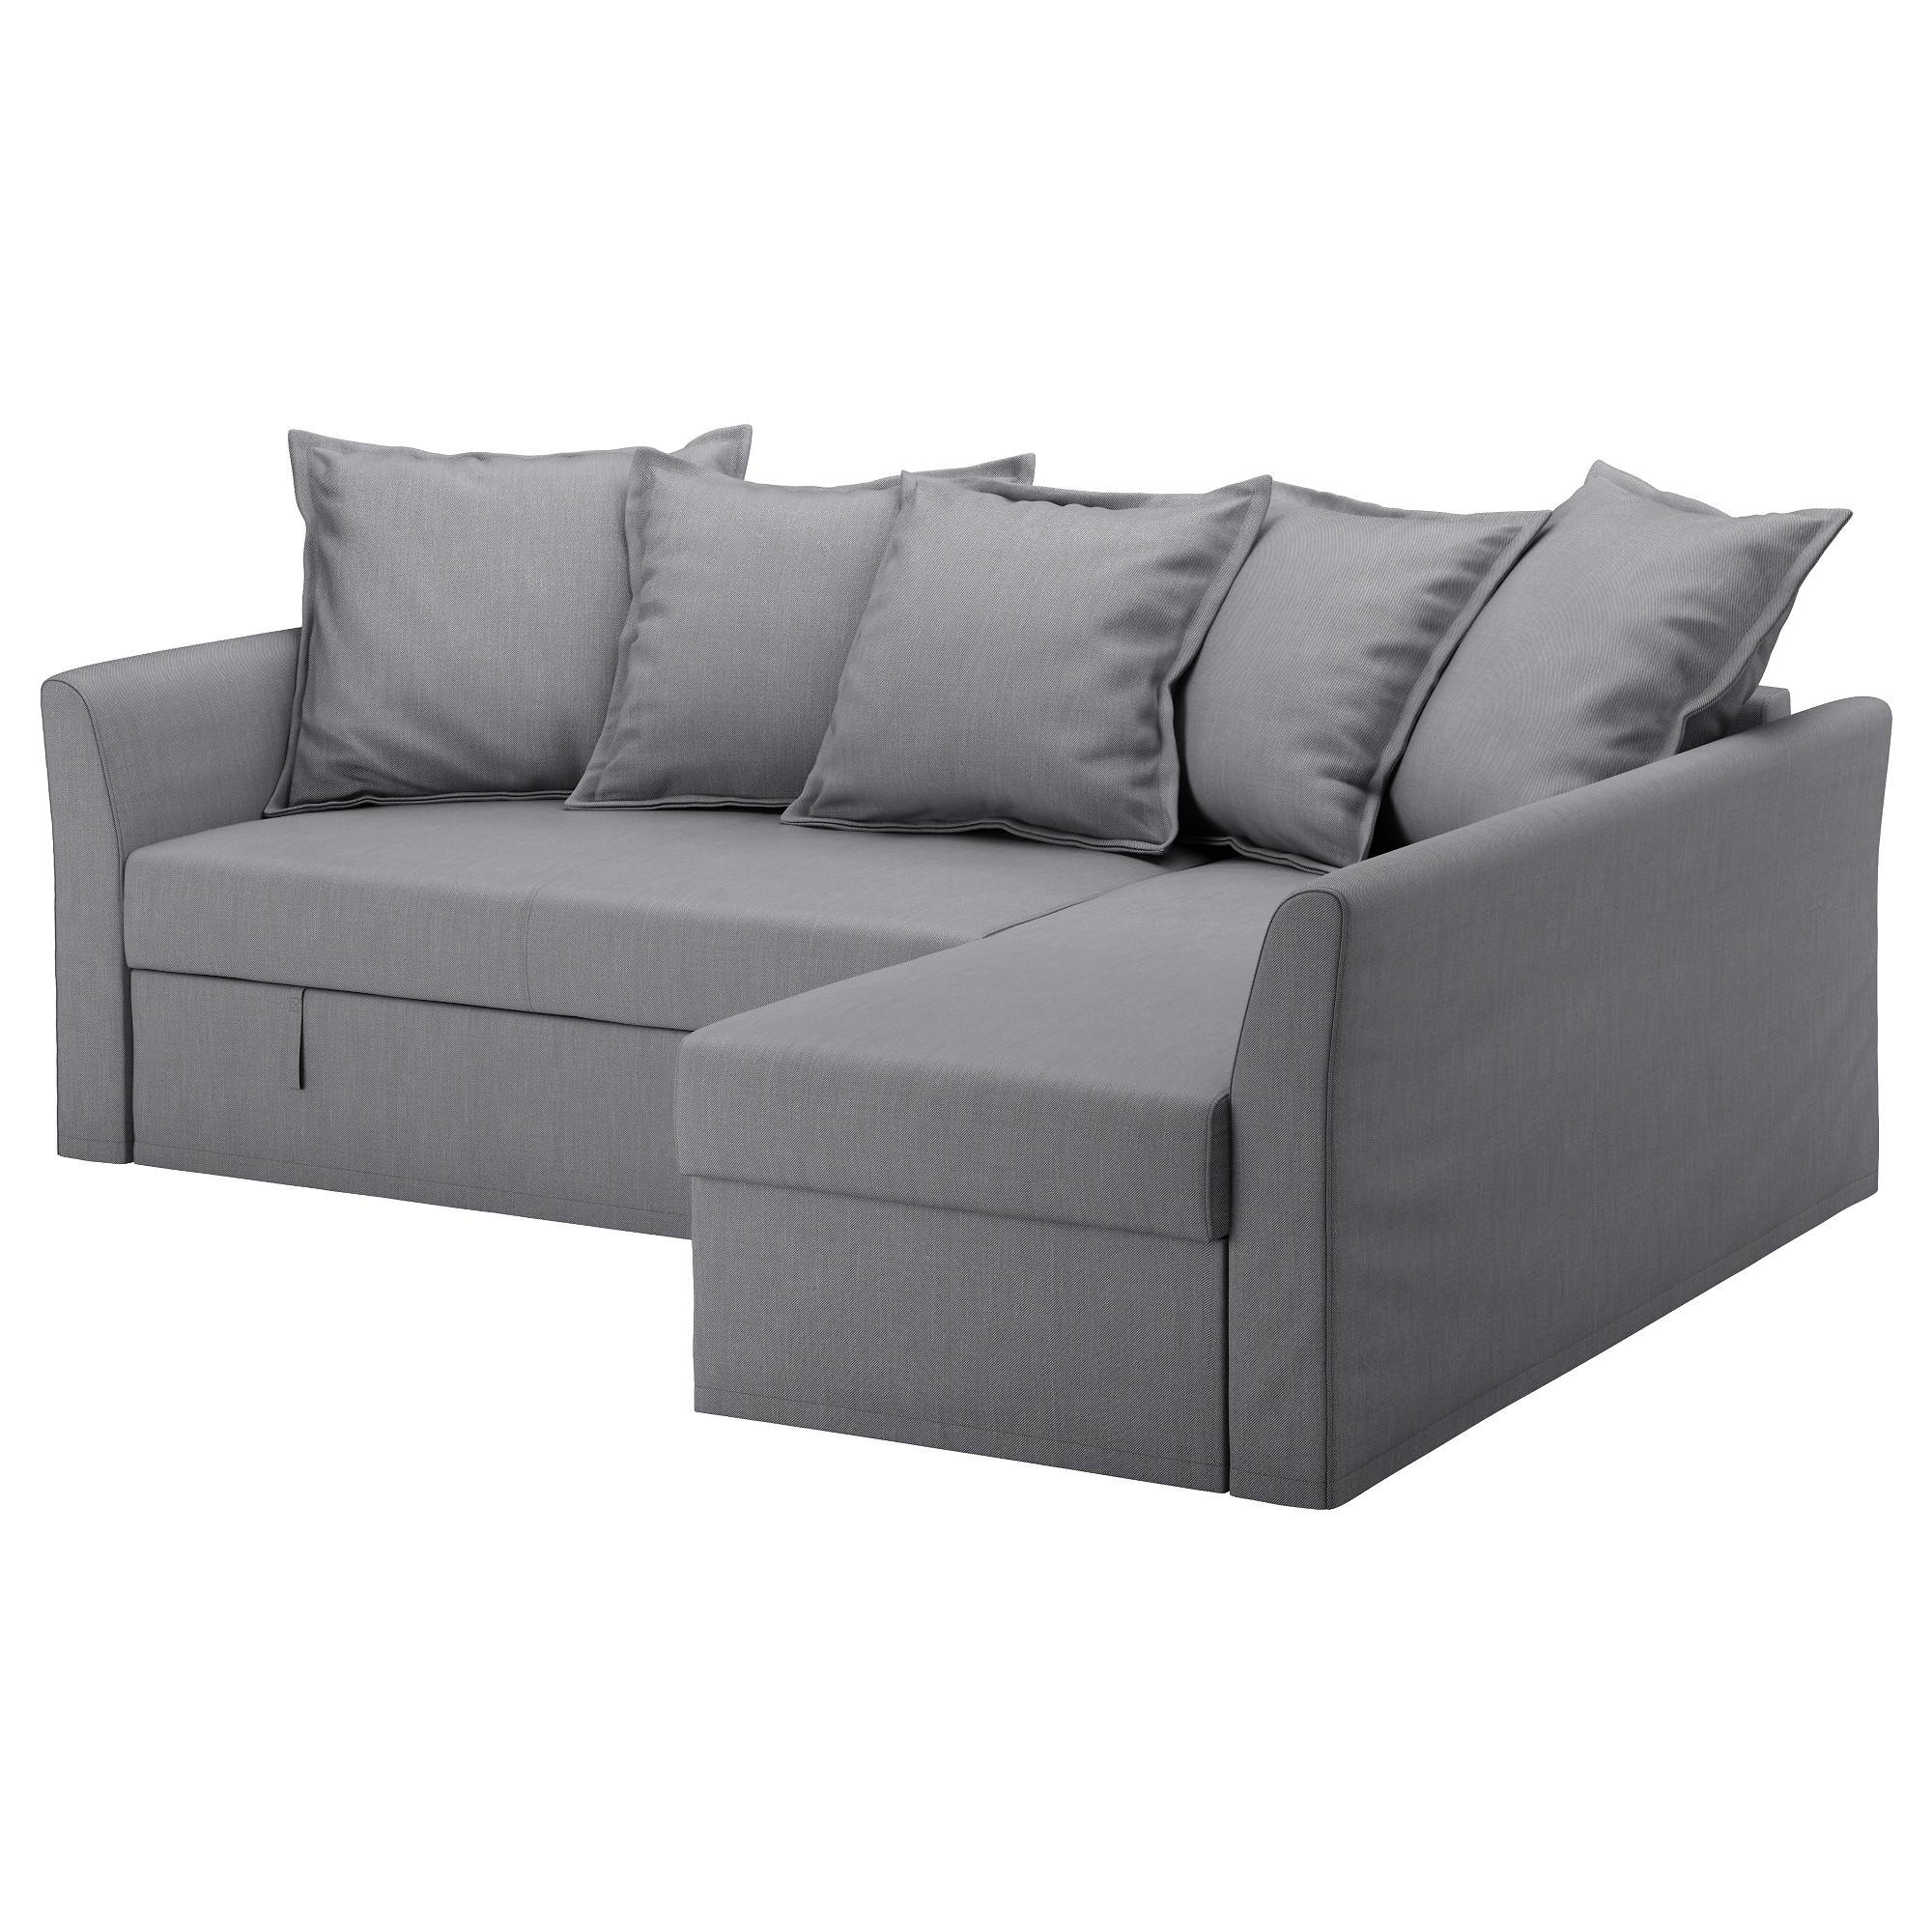 Holmsund Cover For Sleeper Sectional, 3 Seat - Nordvalla Medium for Ikea Sectional Sofa Bed (Image 7 of 25)